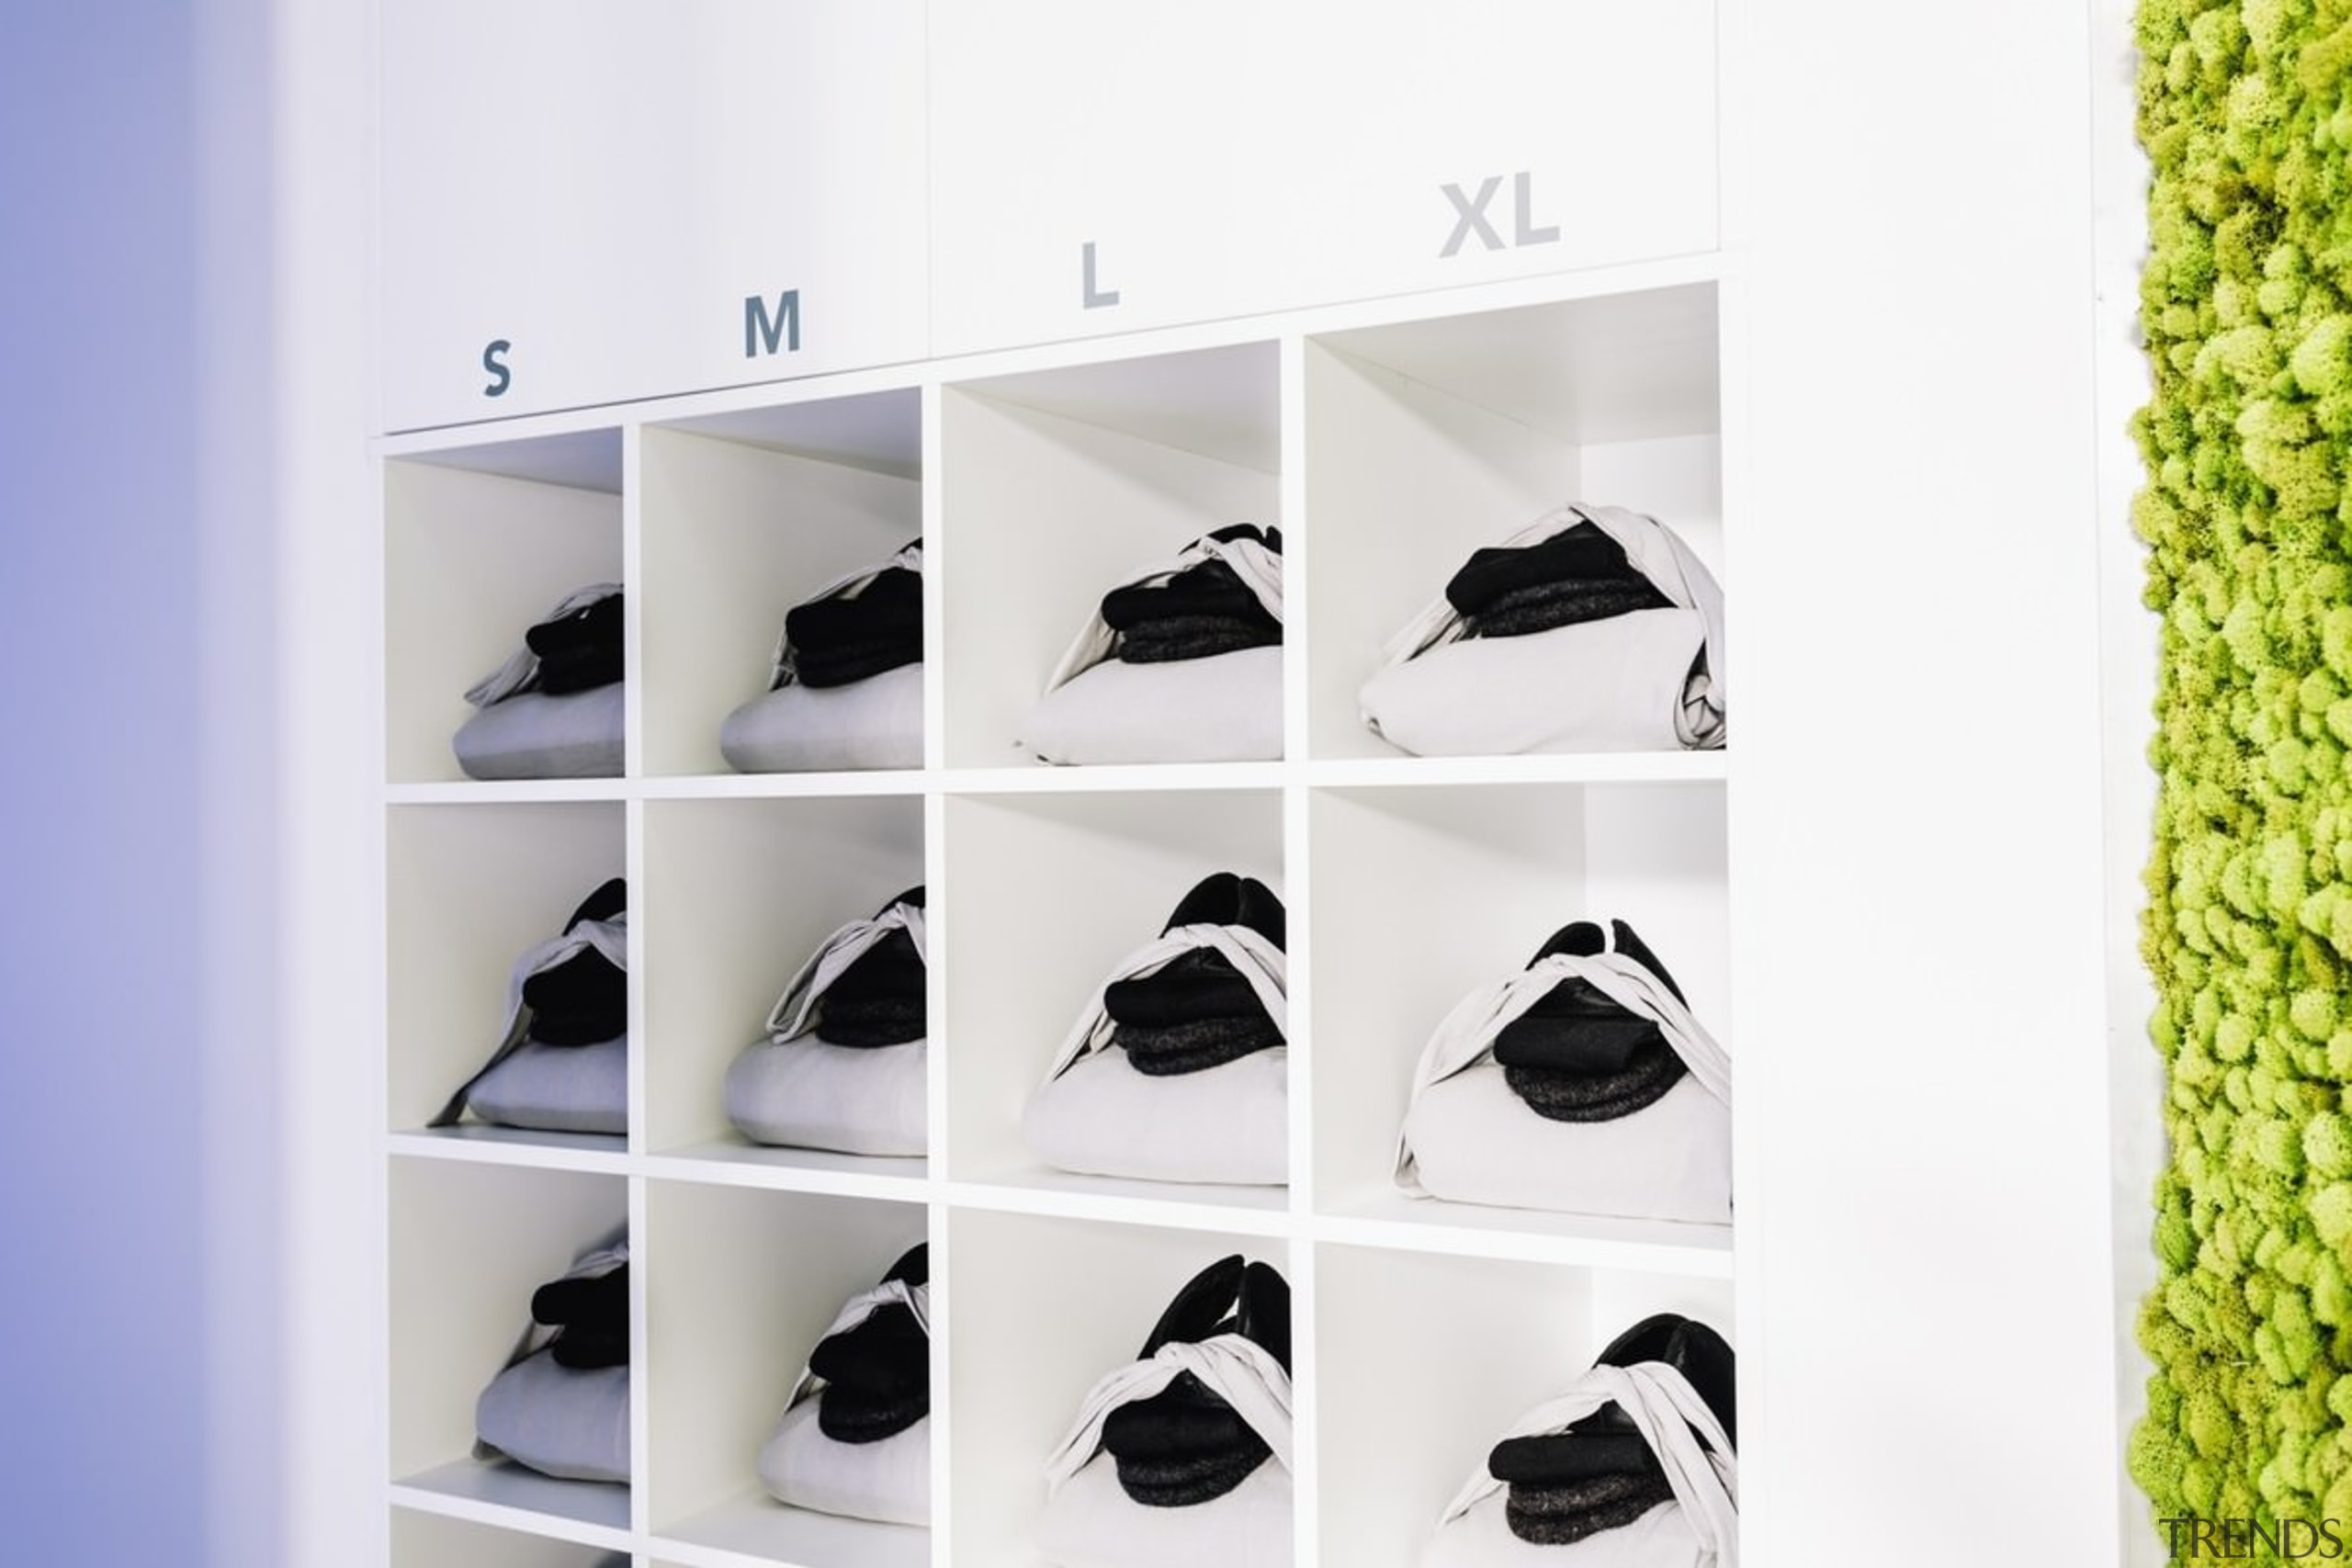 Cryotherapy clothing sits in appropriate alcoves - Cryotherapy footwear, furniture, product, product design, shelf, shelving, shoe, shoe store, white